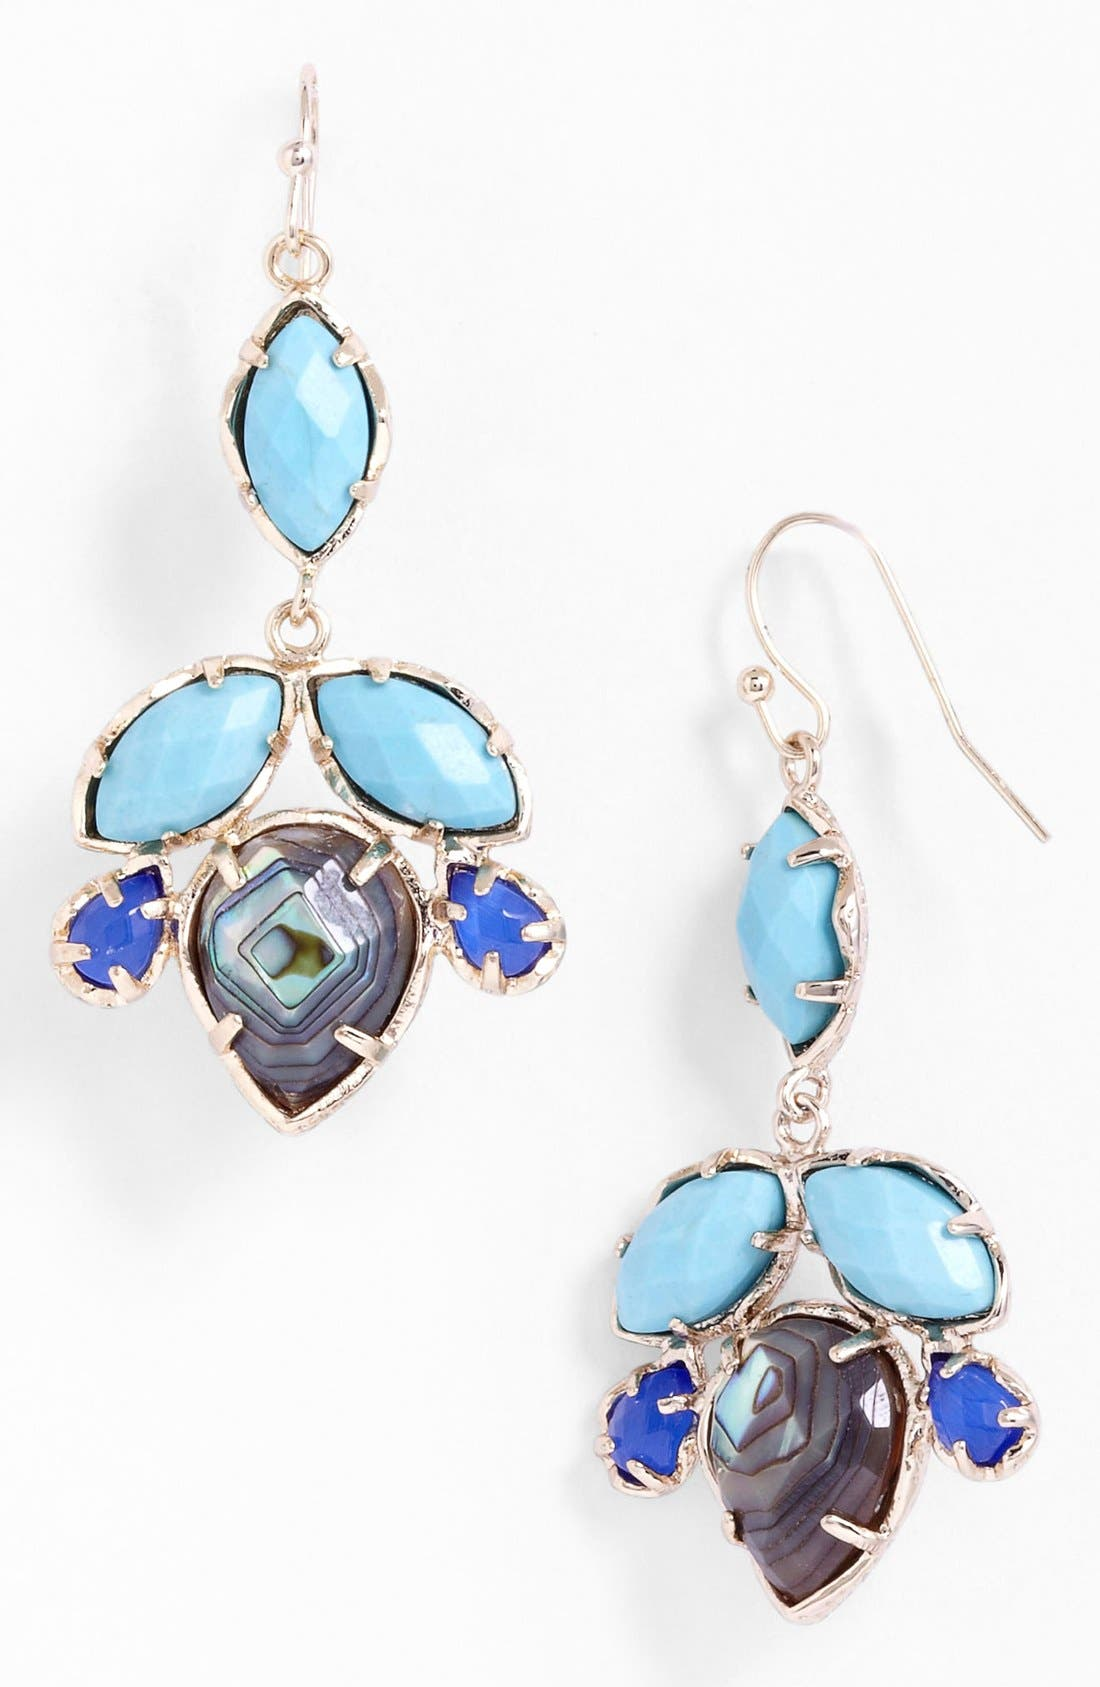 Main Image - Kendra Scott 'Vani' Statement Earrings